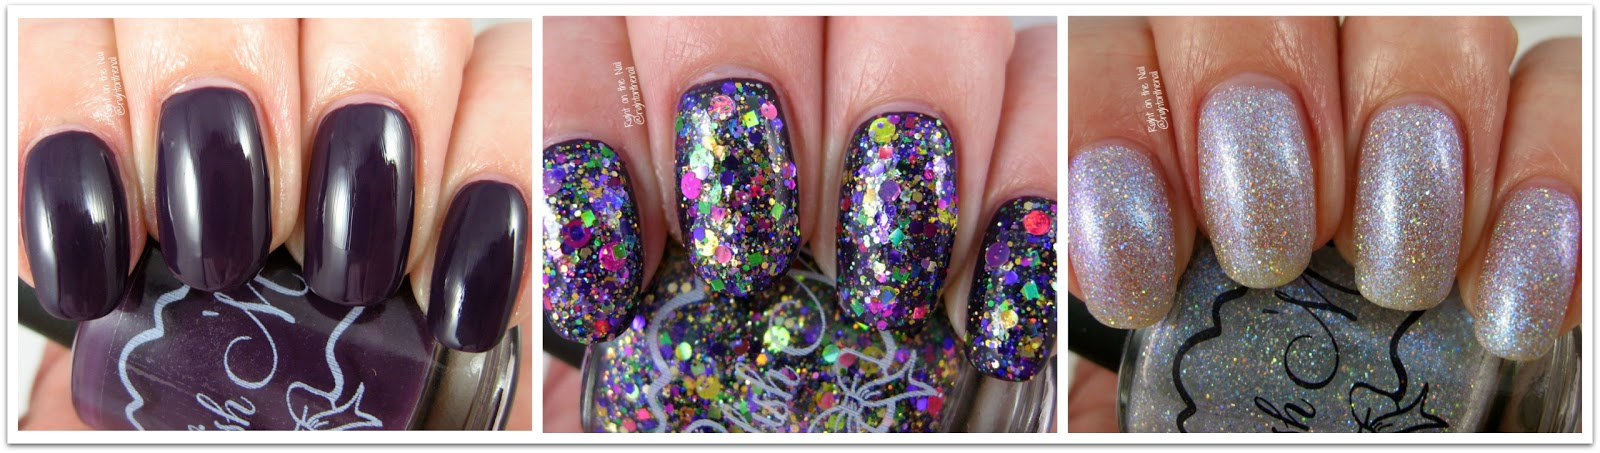 Right on the Nail: Polish \'M Mardi Gras Trio 2017 Swatches and Reviews